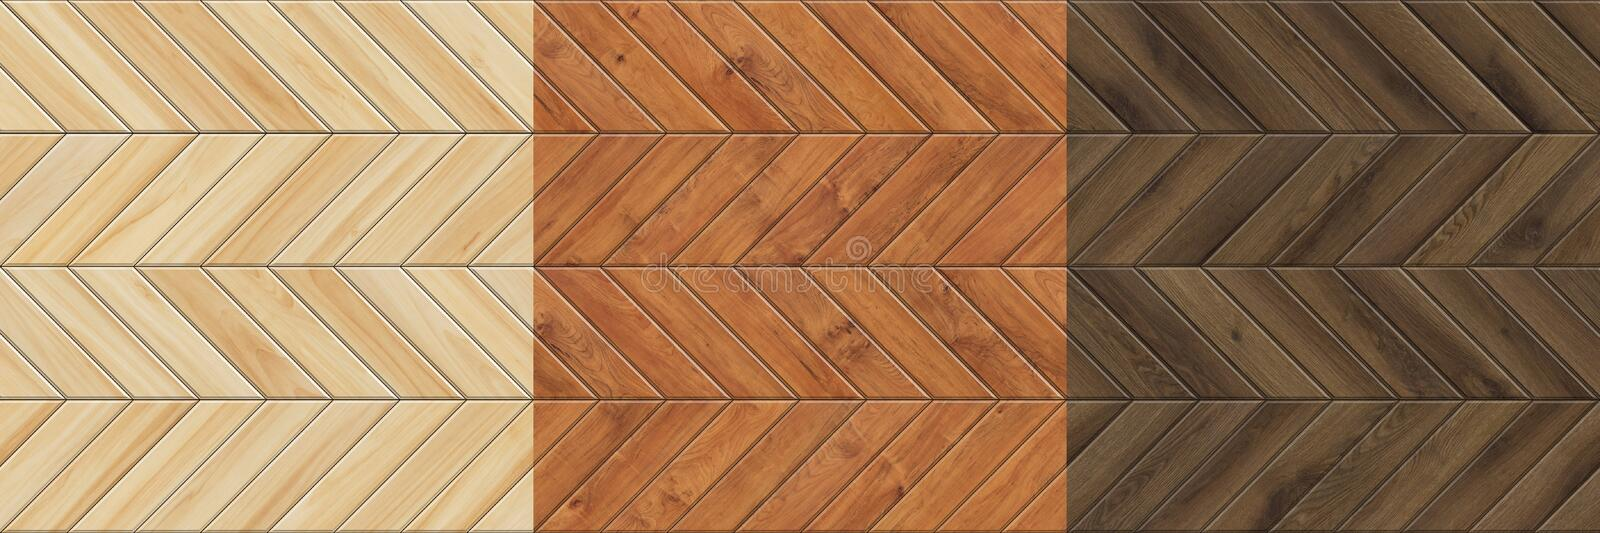 Set of high resolution seamless textures of wooden parquet. Chevron patterns. Of wood floors stock photo